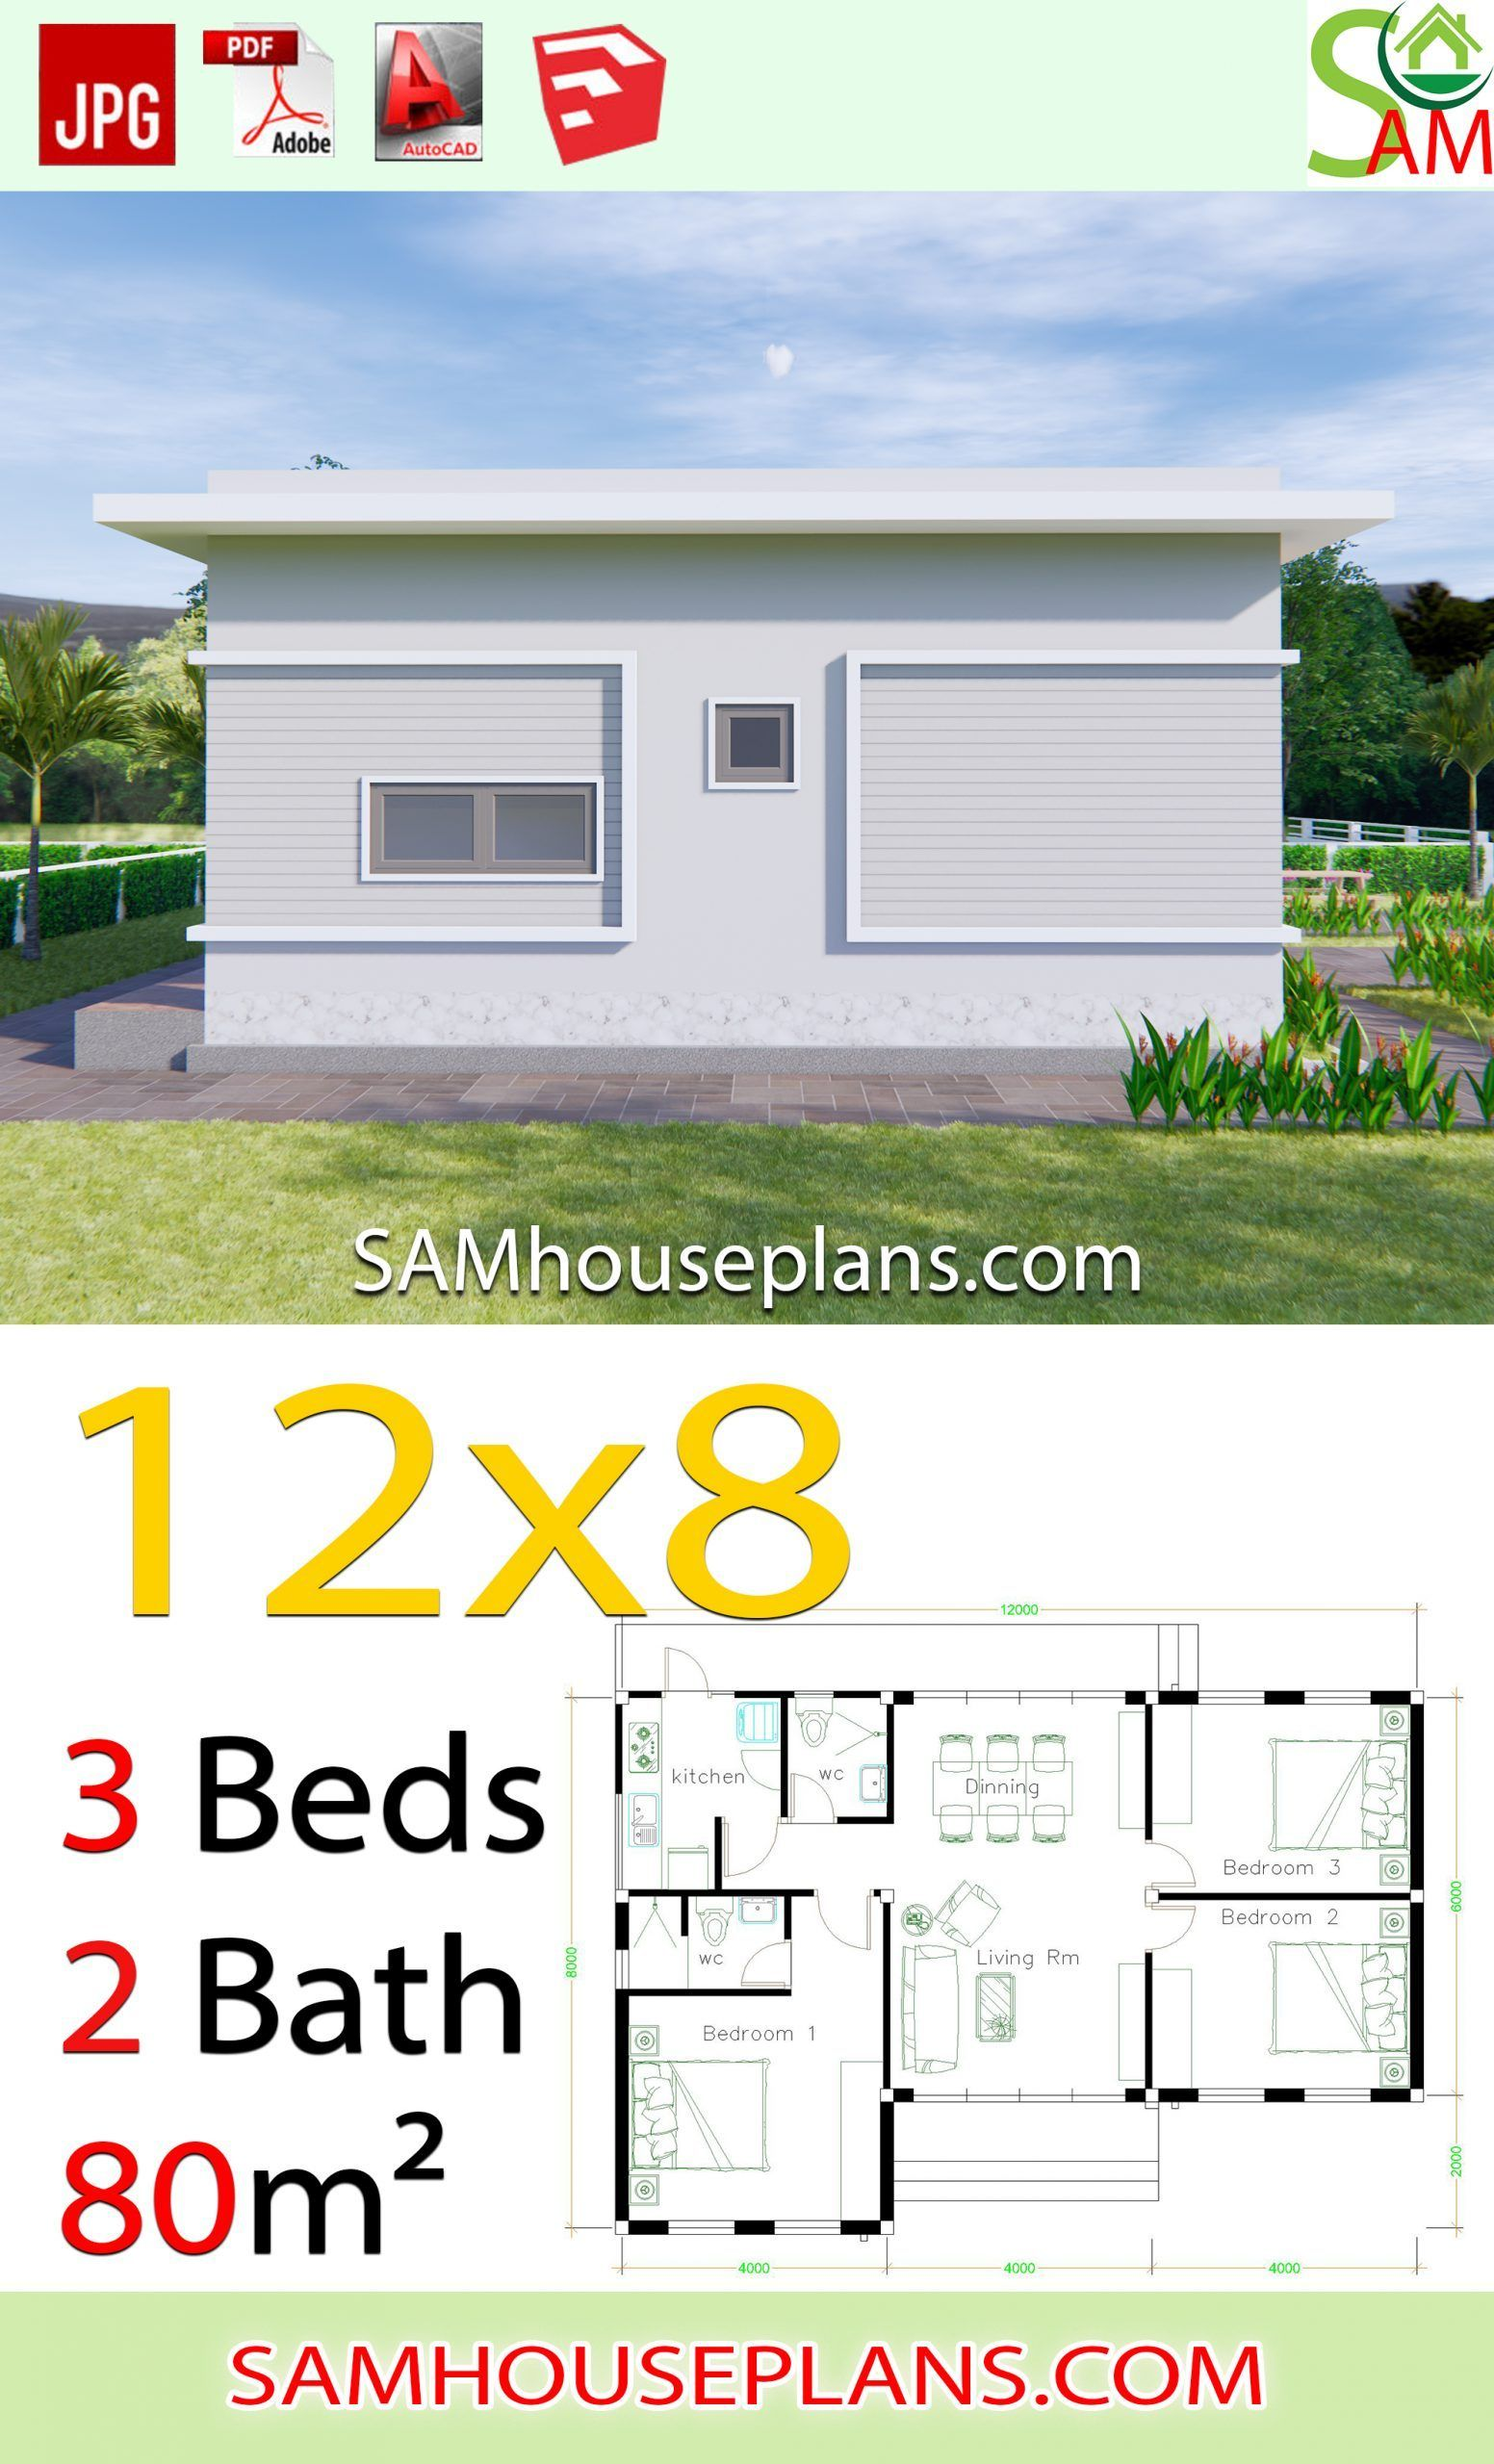 House Plans 12x8 With 3 Bedrooms Terrace Roof Sam House Plans House Plans House Roof My House Plans